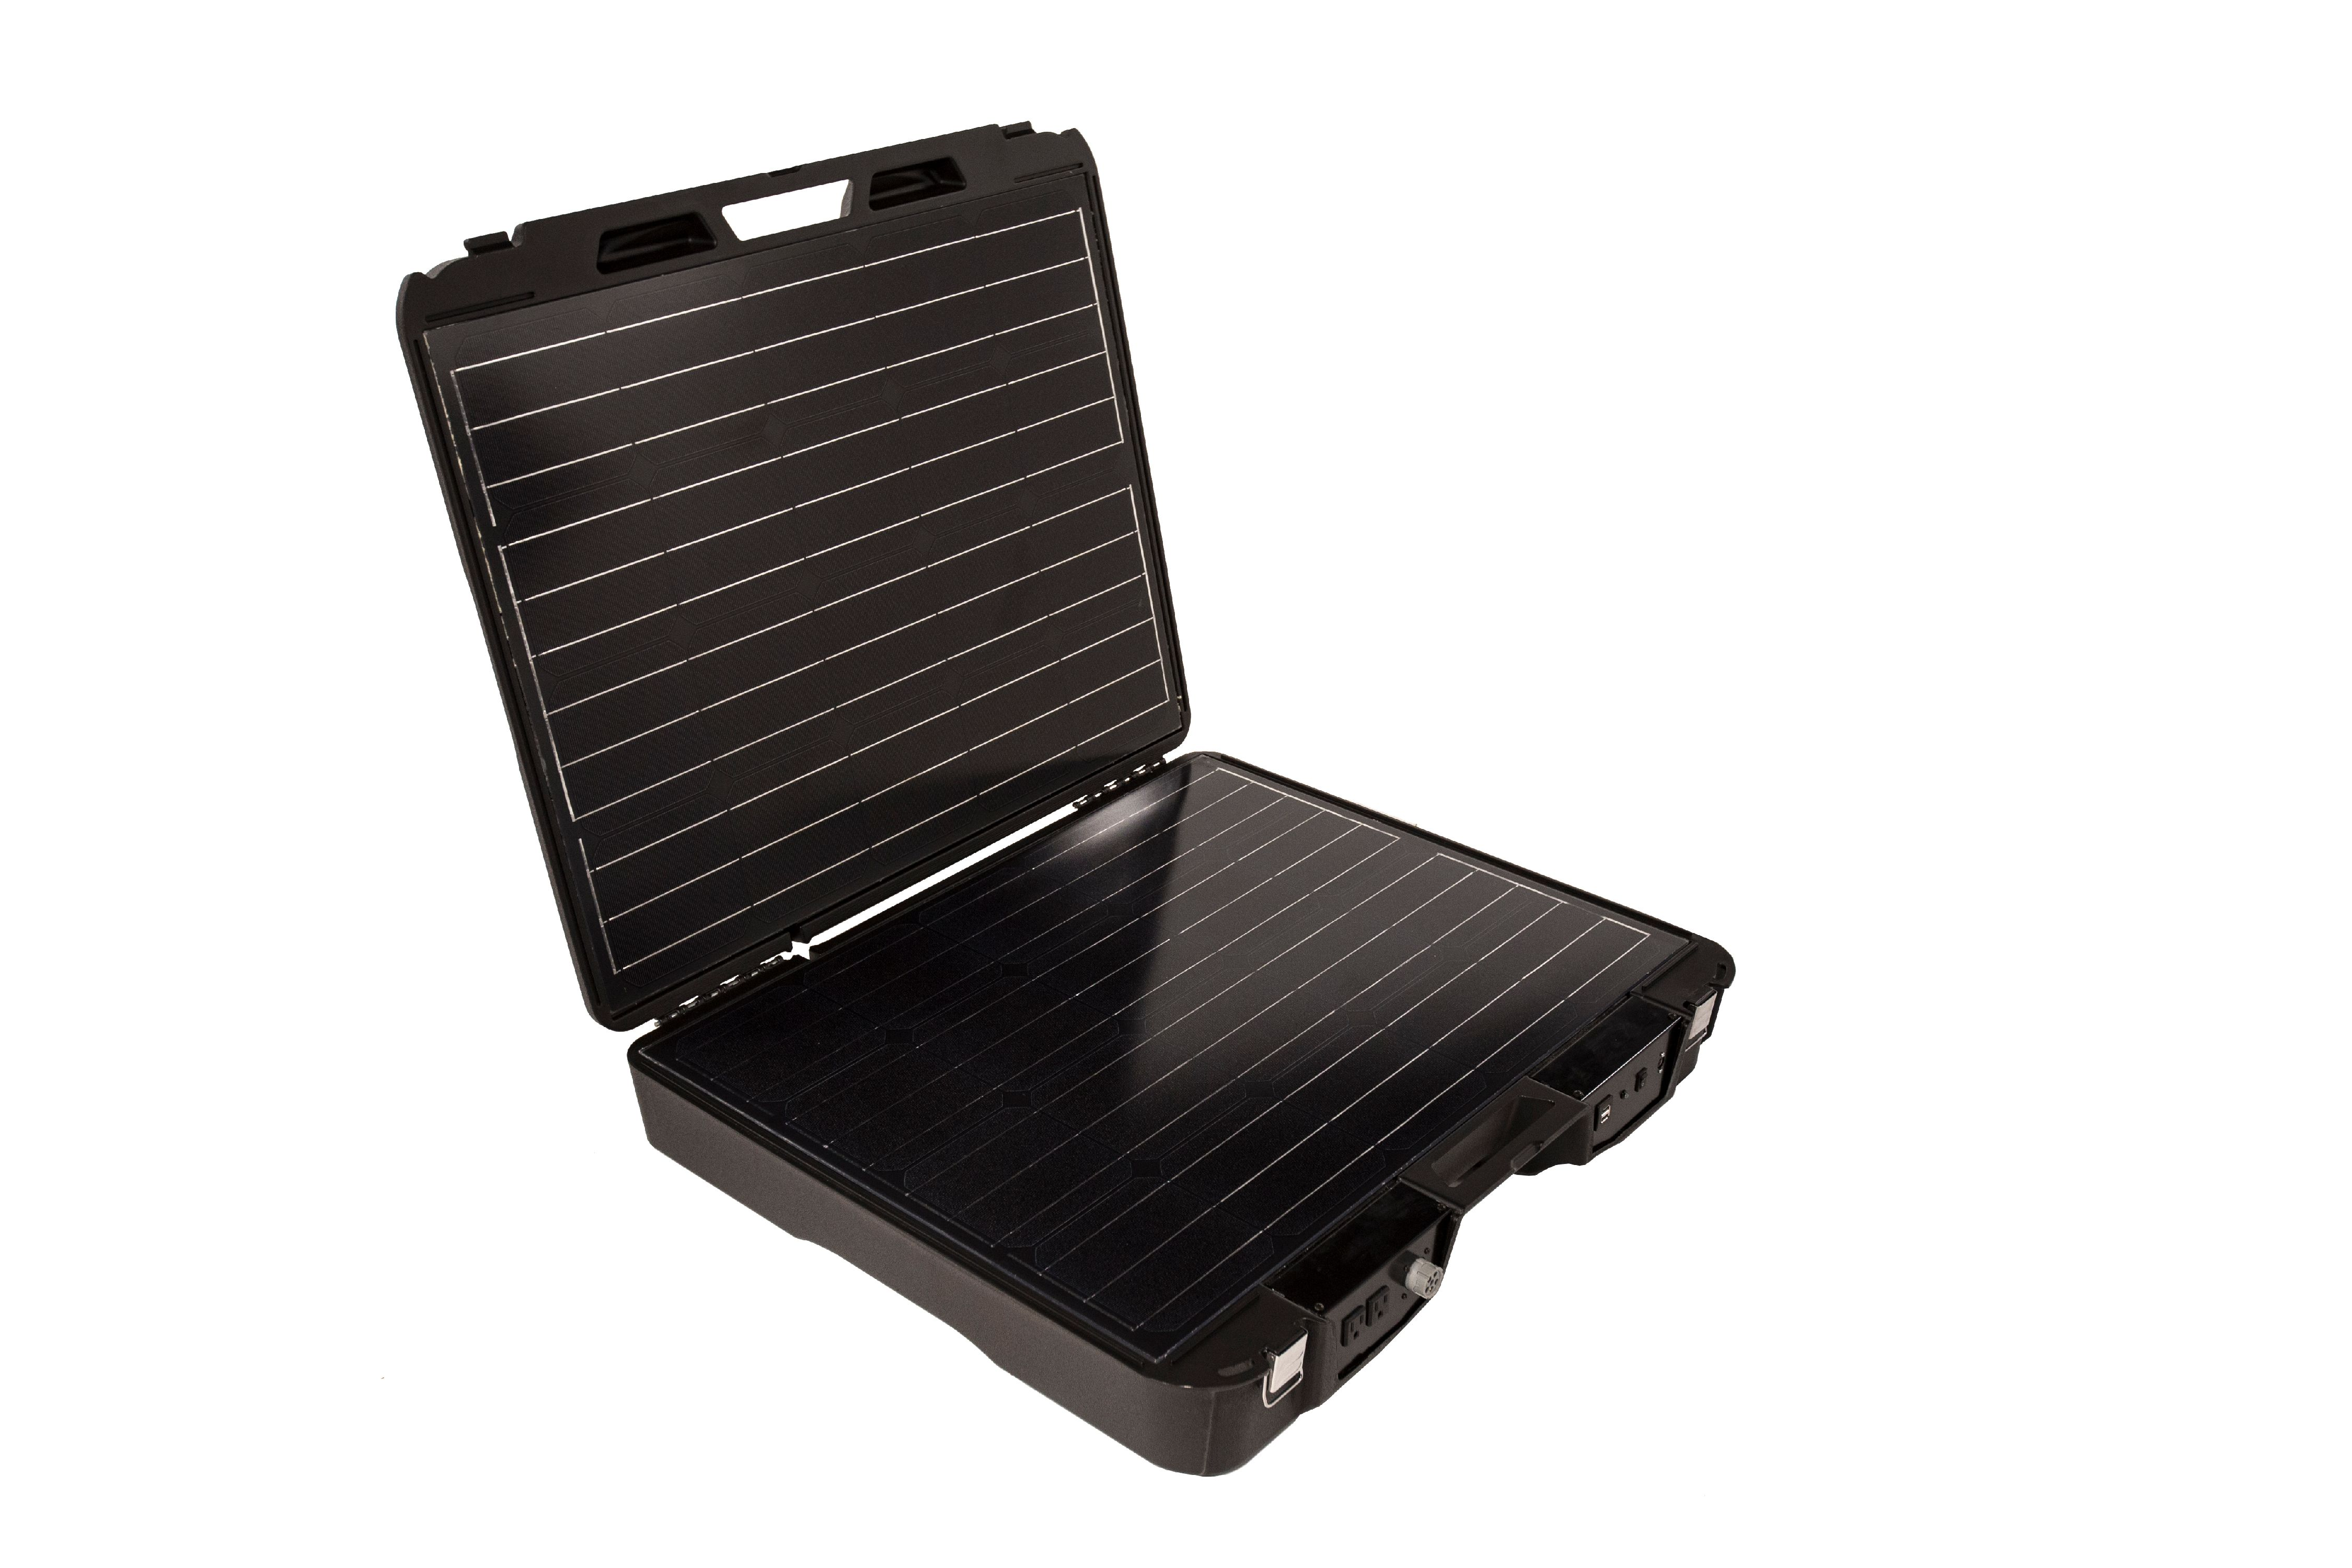 Forty2 Max Solar Generator Alternative ReNewable Energy Solar Panel System 2,000W 110V the Emergency Solar Battery Charger Power Source by